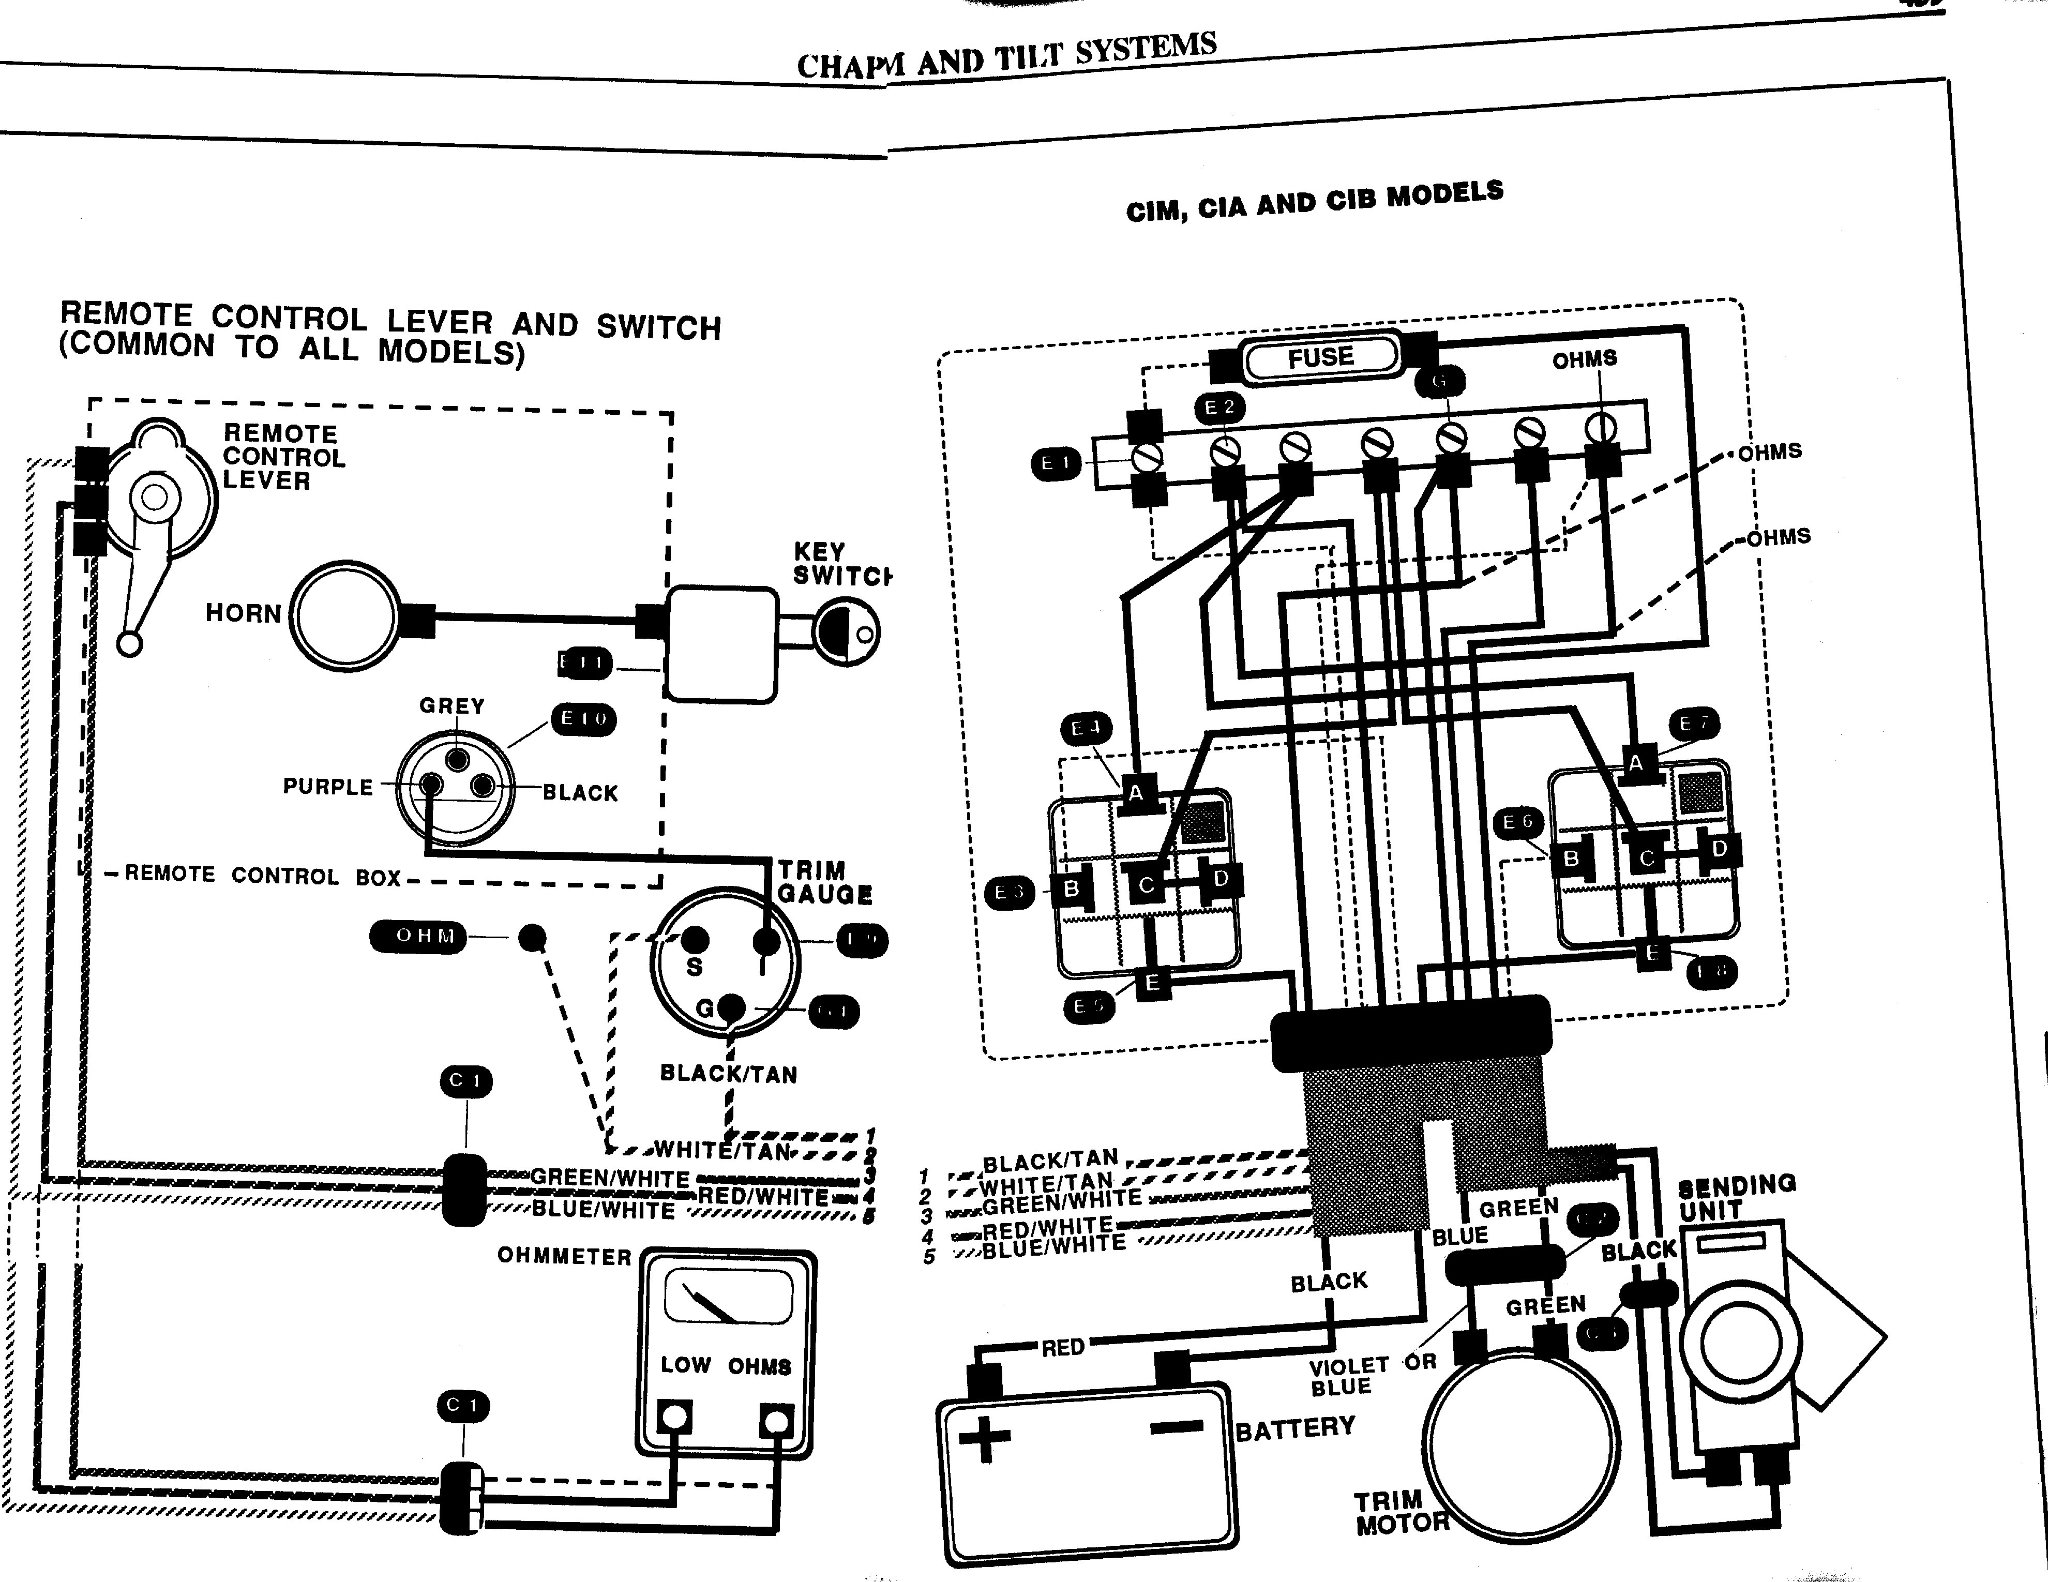 1995 Mitsubishi Mirage Wiring Diagram Real Volvo 740 Headlight Radio 1997 Denali Diagrams